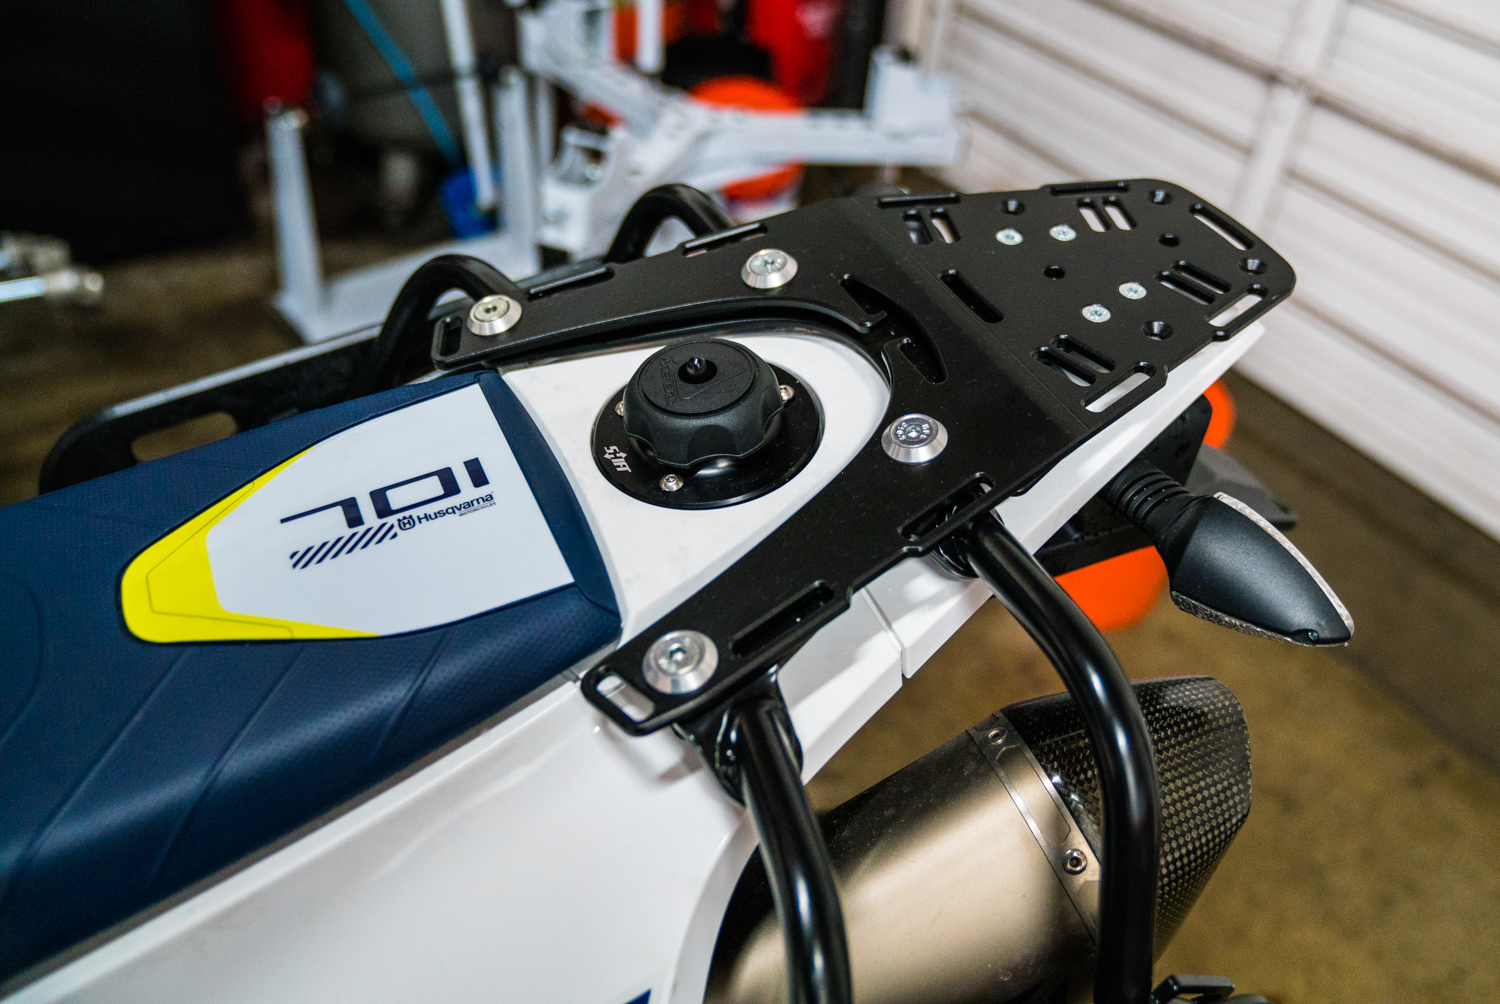 Second Time Around Ride Must Go On 701 Rally Build Rottweiler Husqvarna Wiring Harness Connectors A Brp Anti Vibration Steering Damper Mount Was Installed To Reduce Fatigue The Rider In Two Ways First By Adding Stabilizer You Have Piece Of